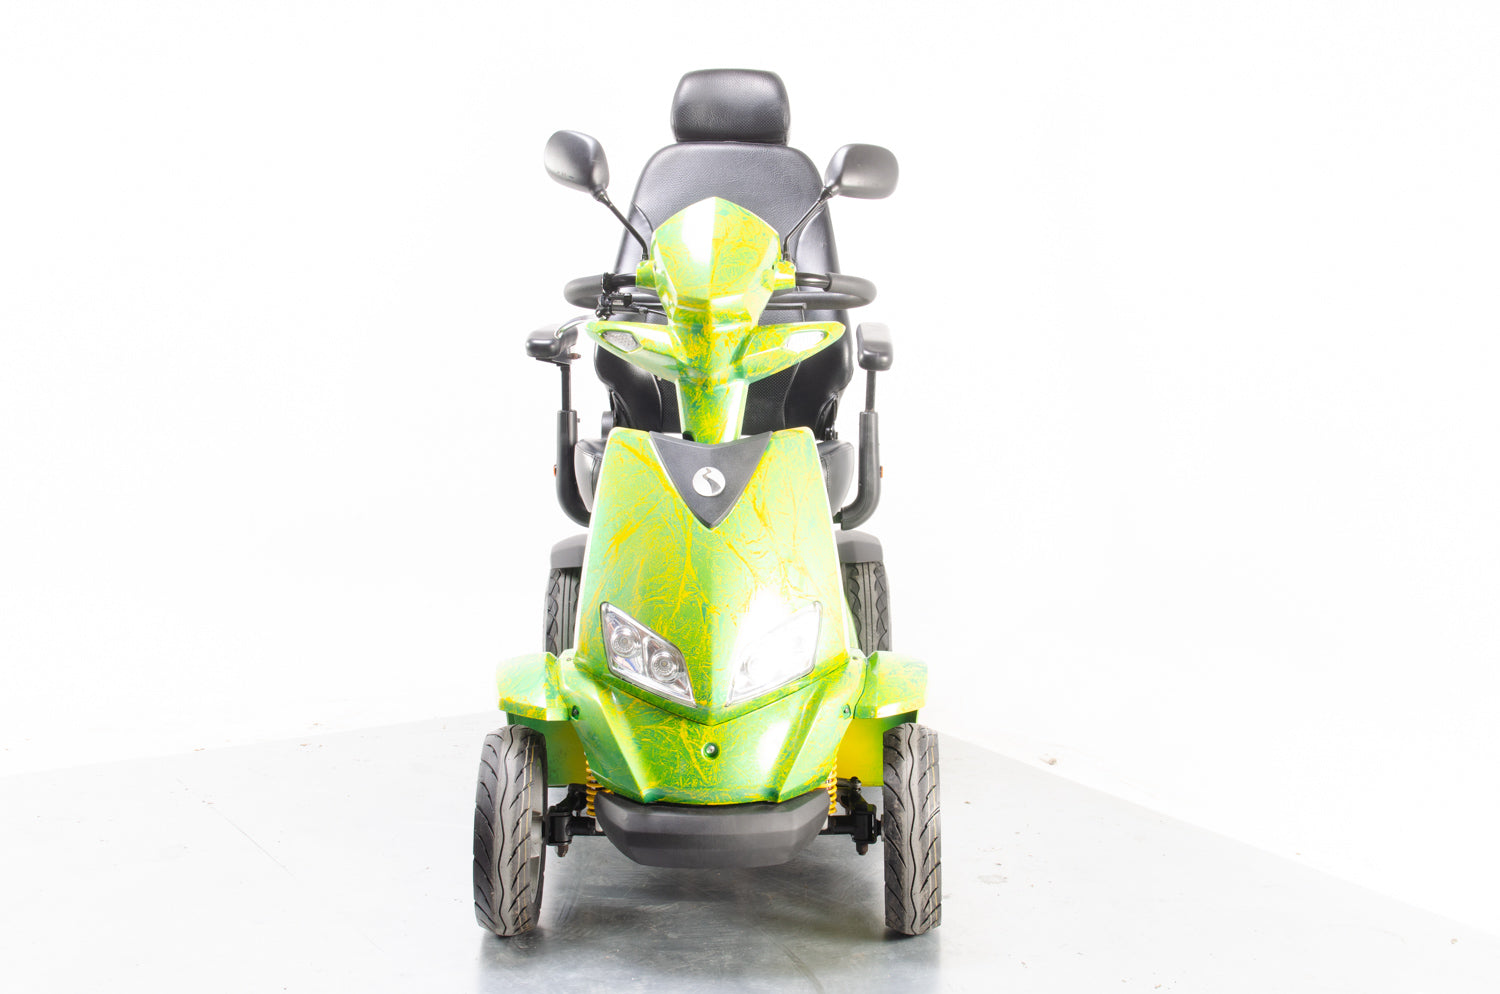 2016 Rascal Vision from Electric Mobility 8mph Large Custom Mobility Scooter in Green